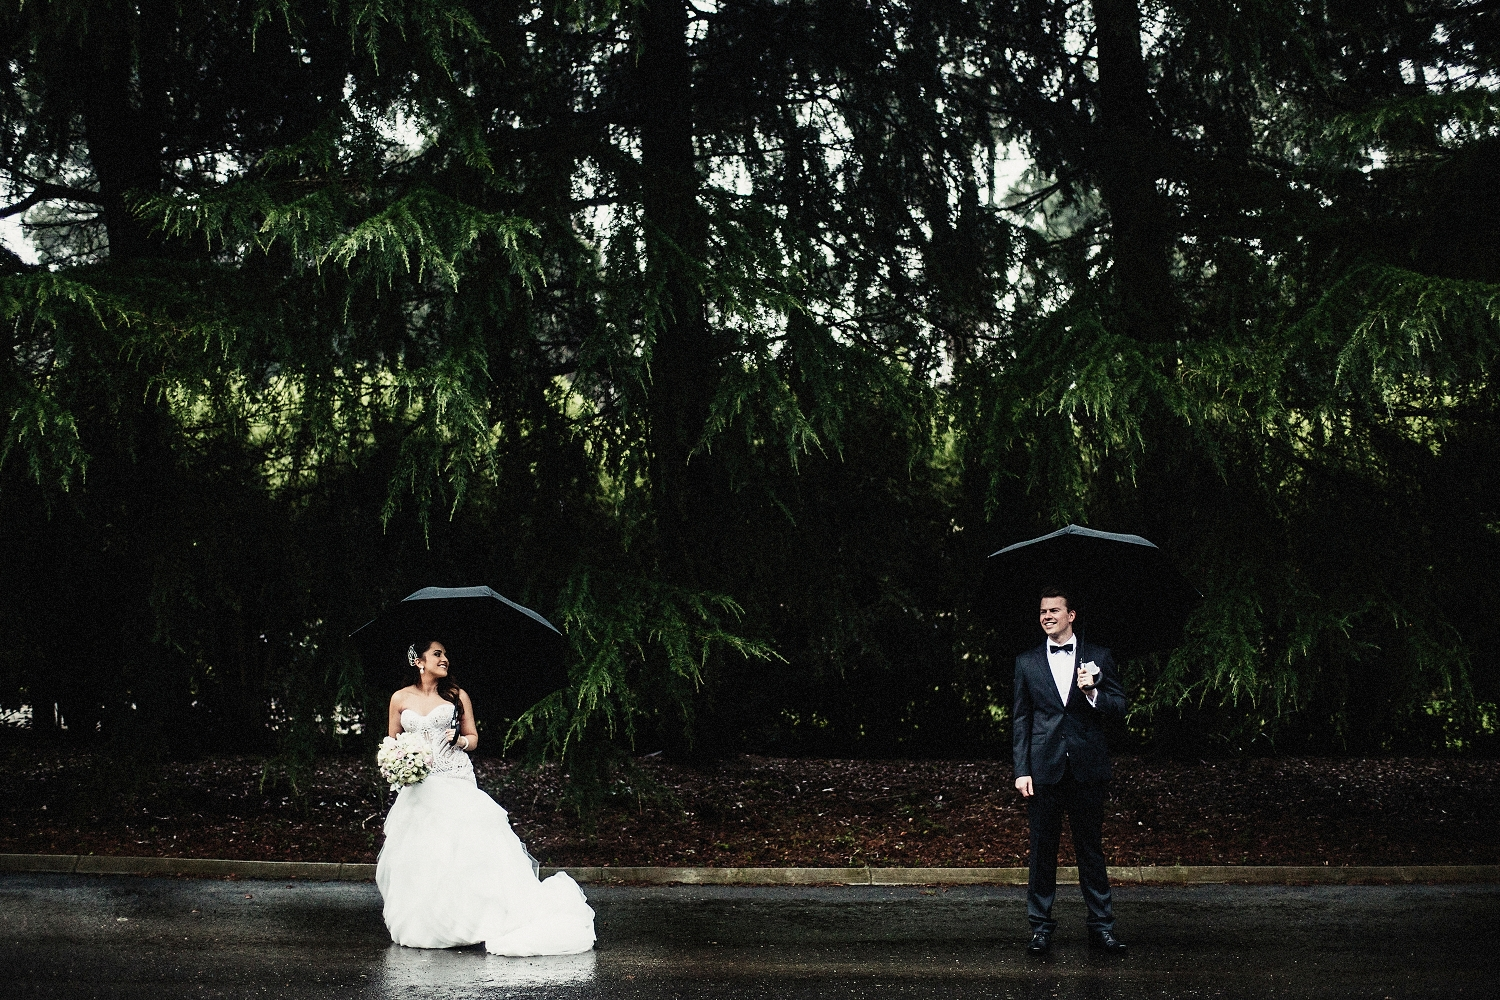 Squarespace_Wedding_Folio-LR-055AE.jpg